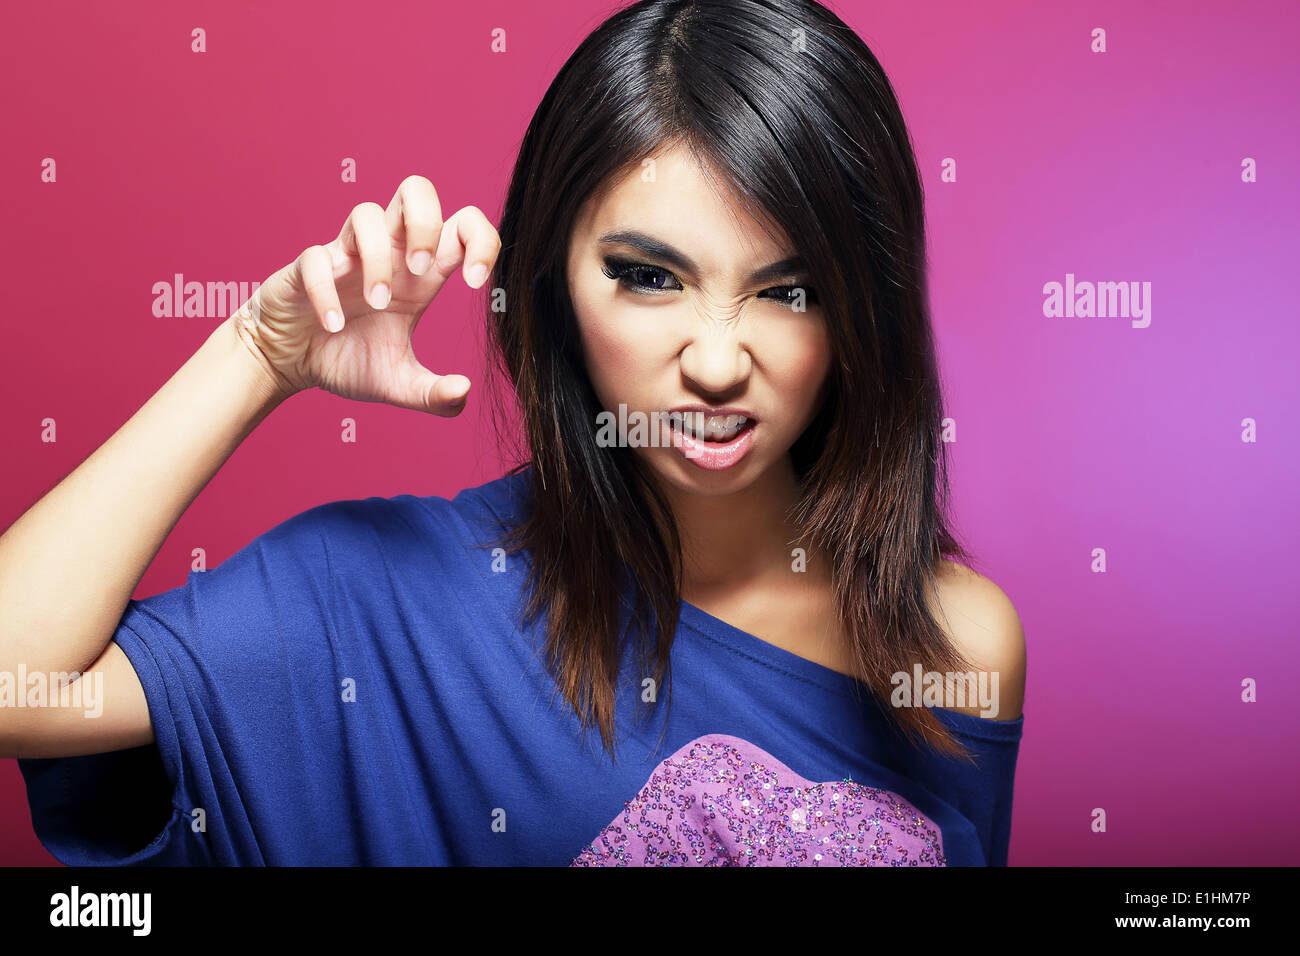 Negative Emotions. Expressive Asian Female Threatens - Stock Image